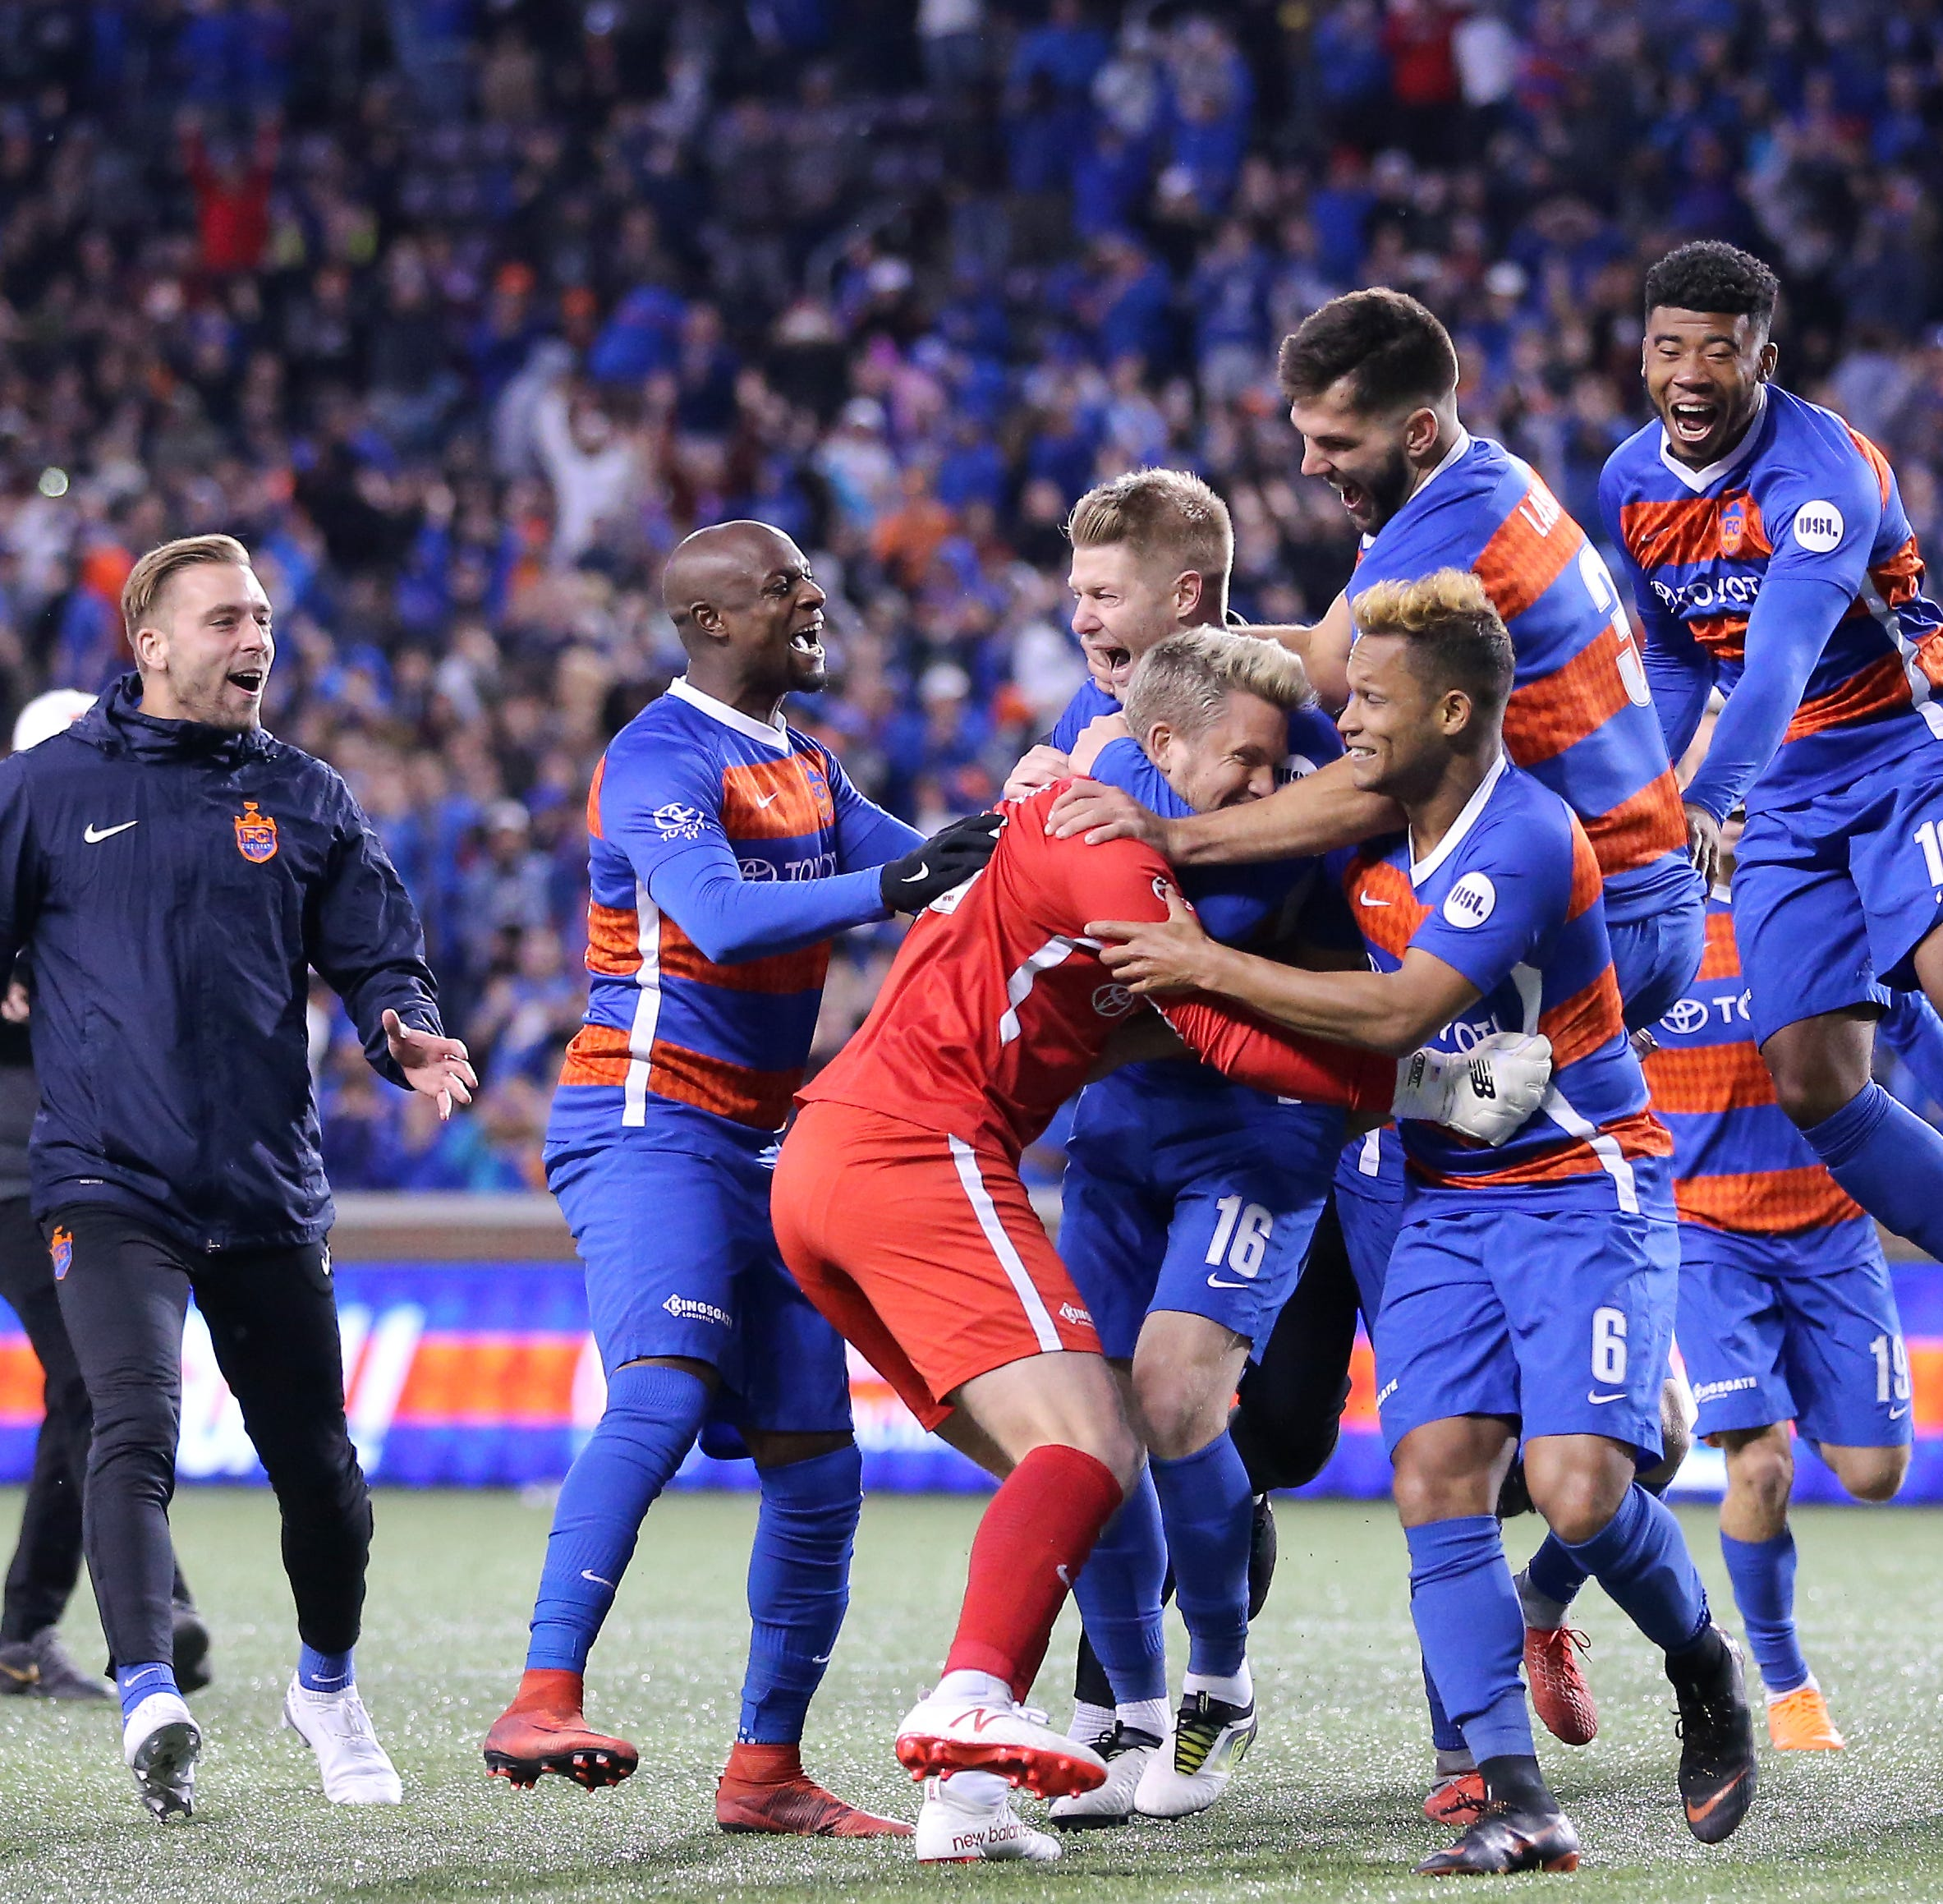 FC Cincinnati's penalty shootout could've gone so wrong. Instead, it and Walker went right